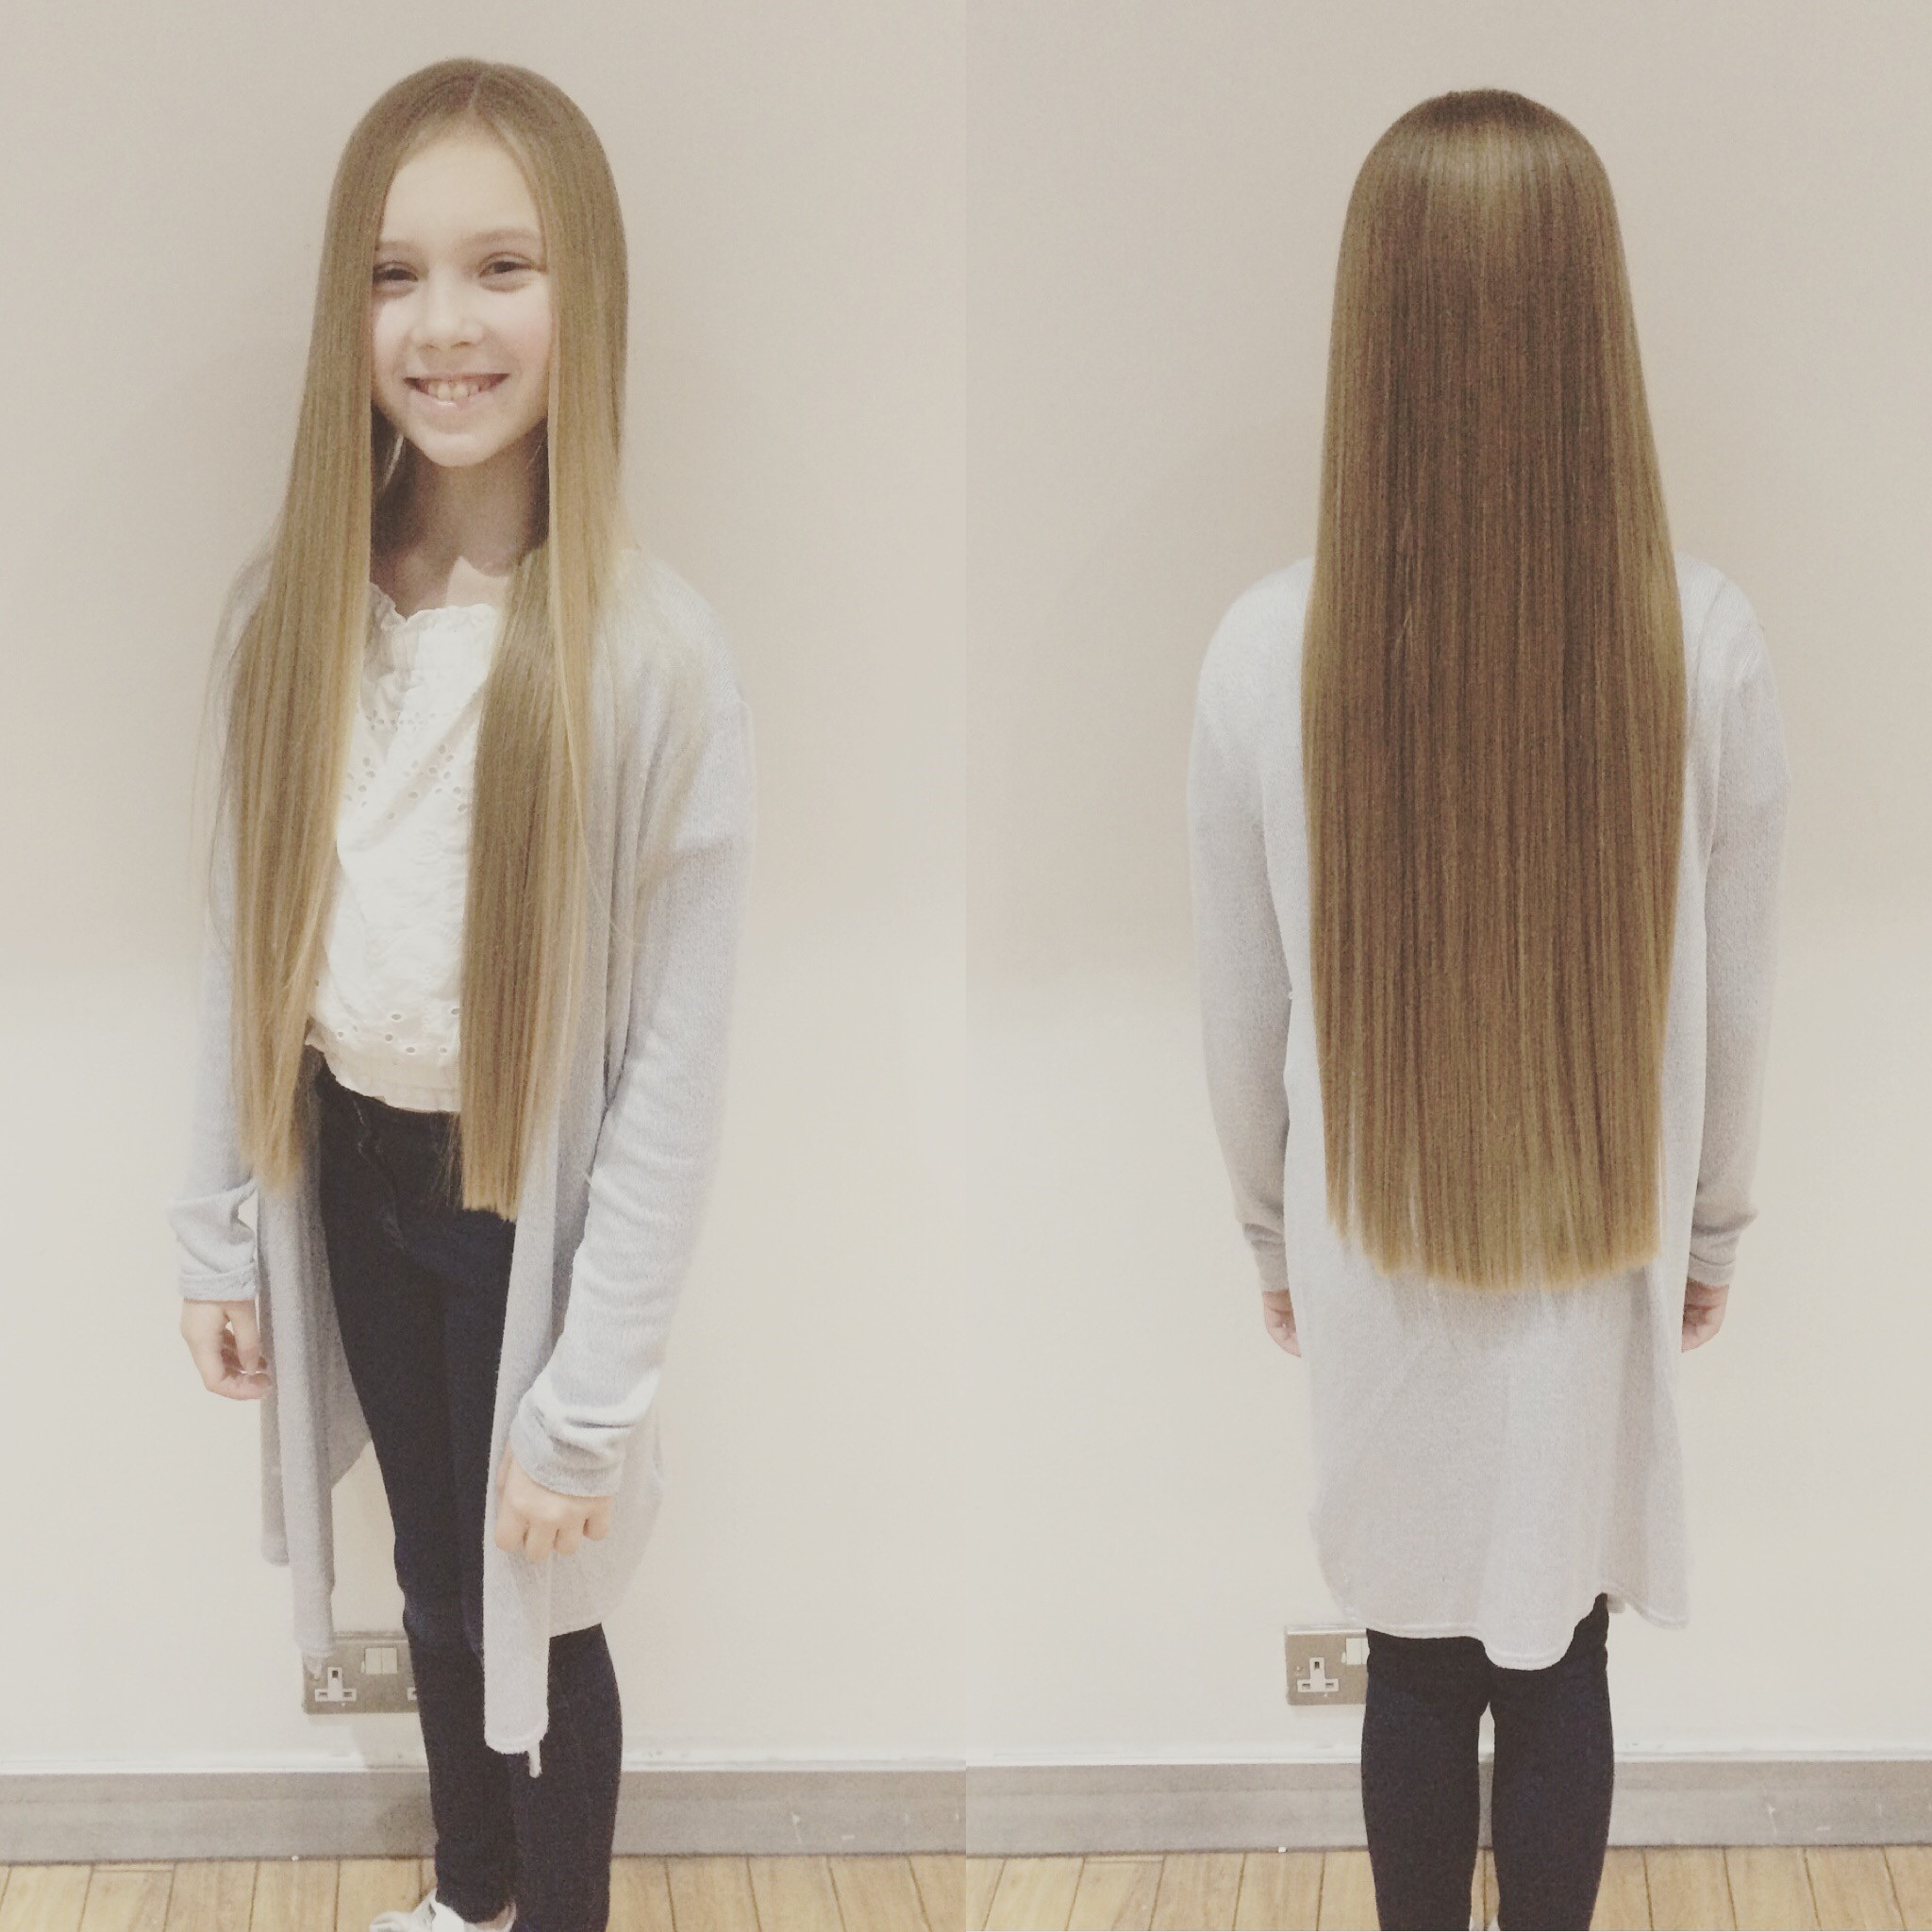 Schoolgirl cuts off 15 inches of own hair to raise money for charity